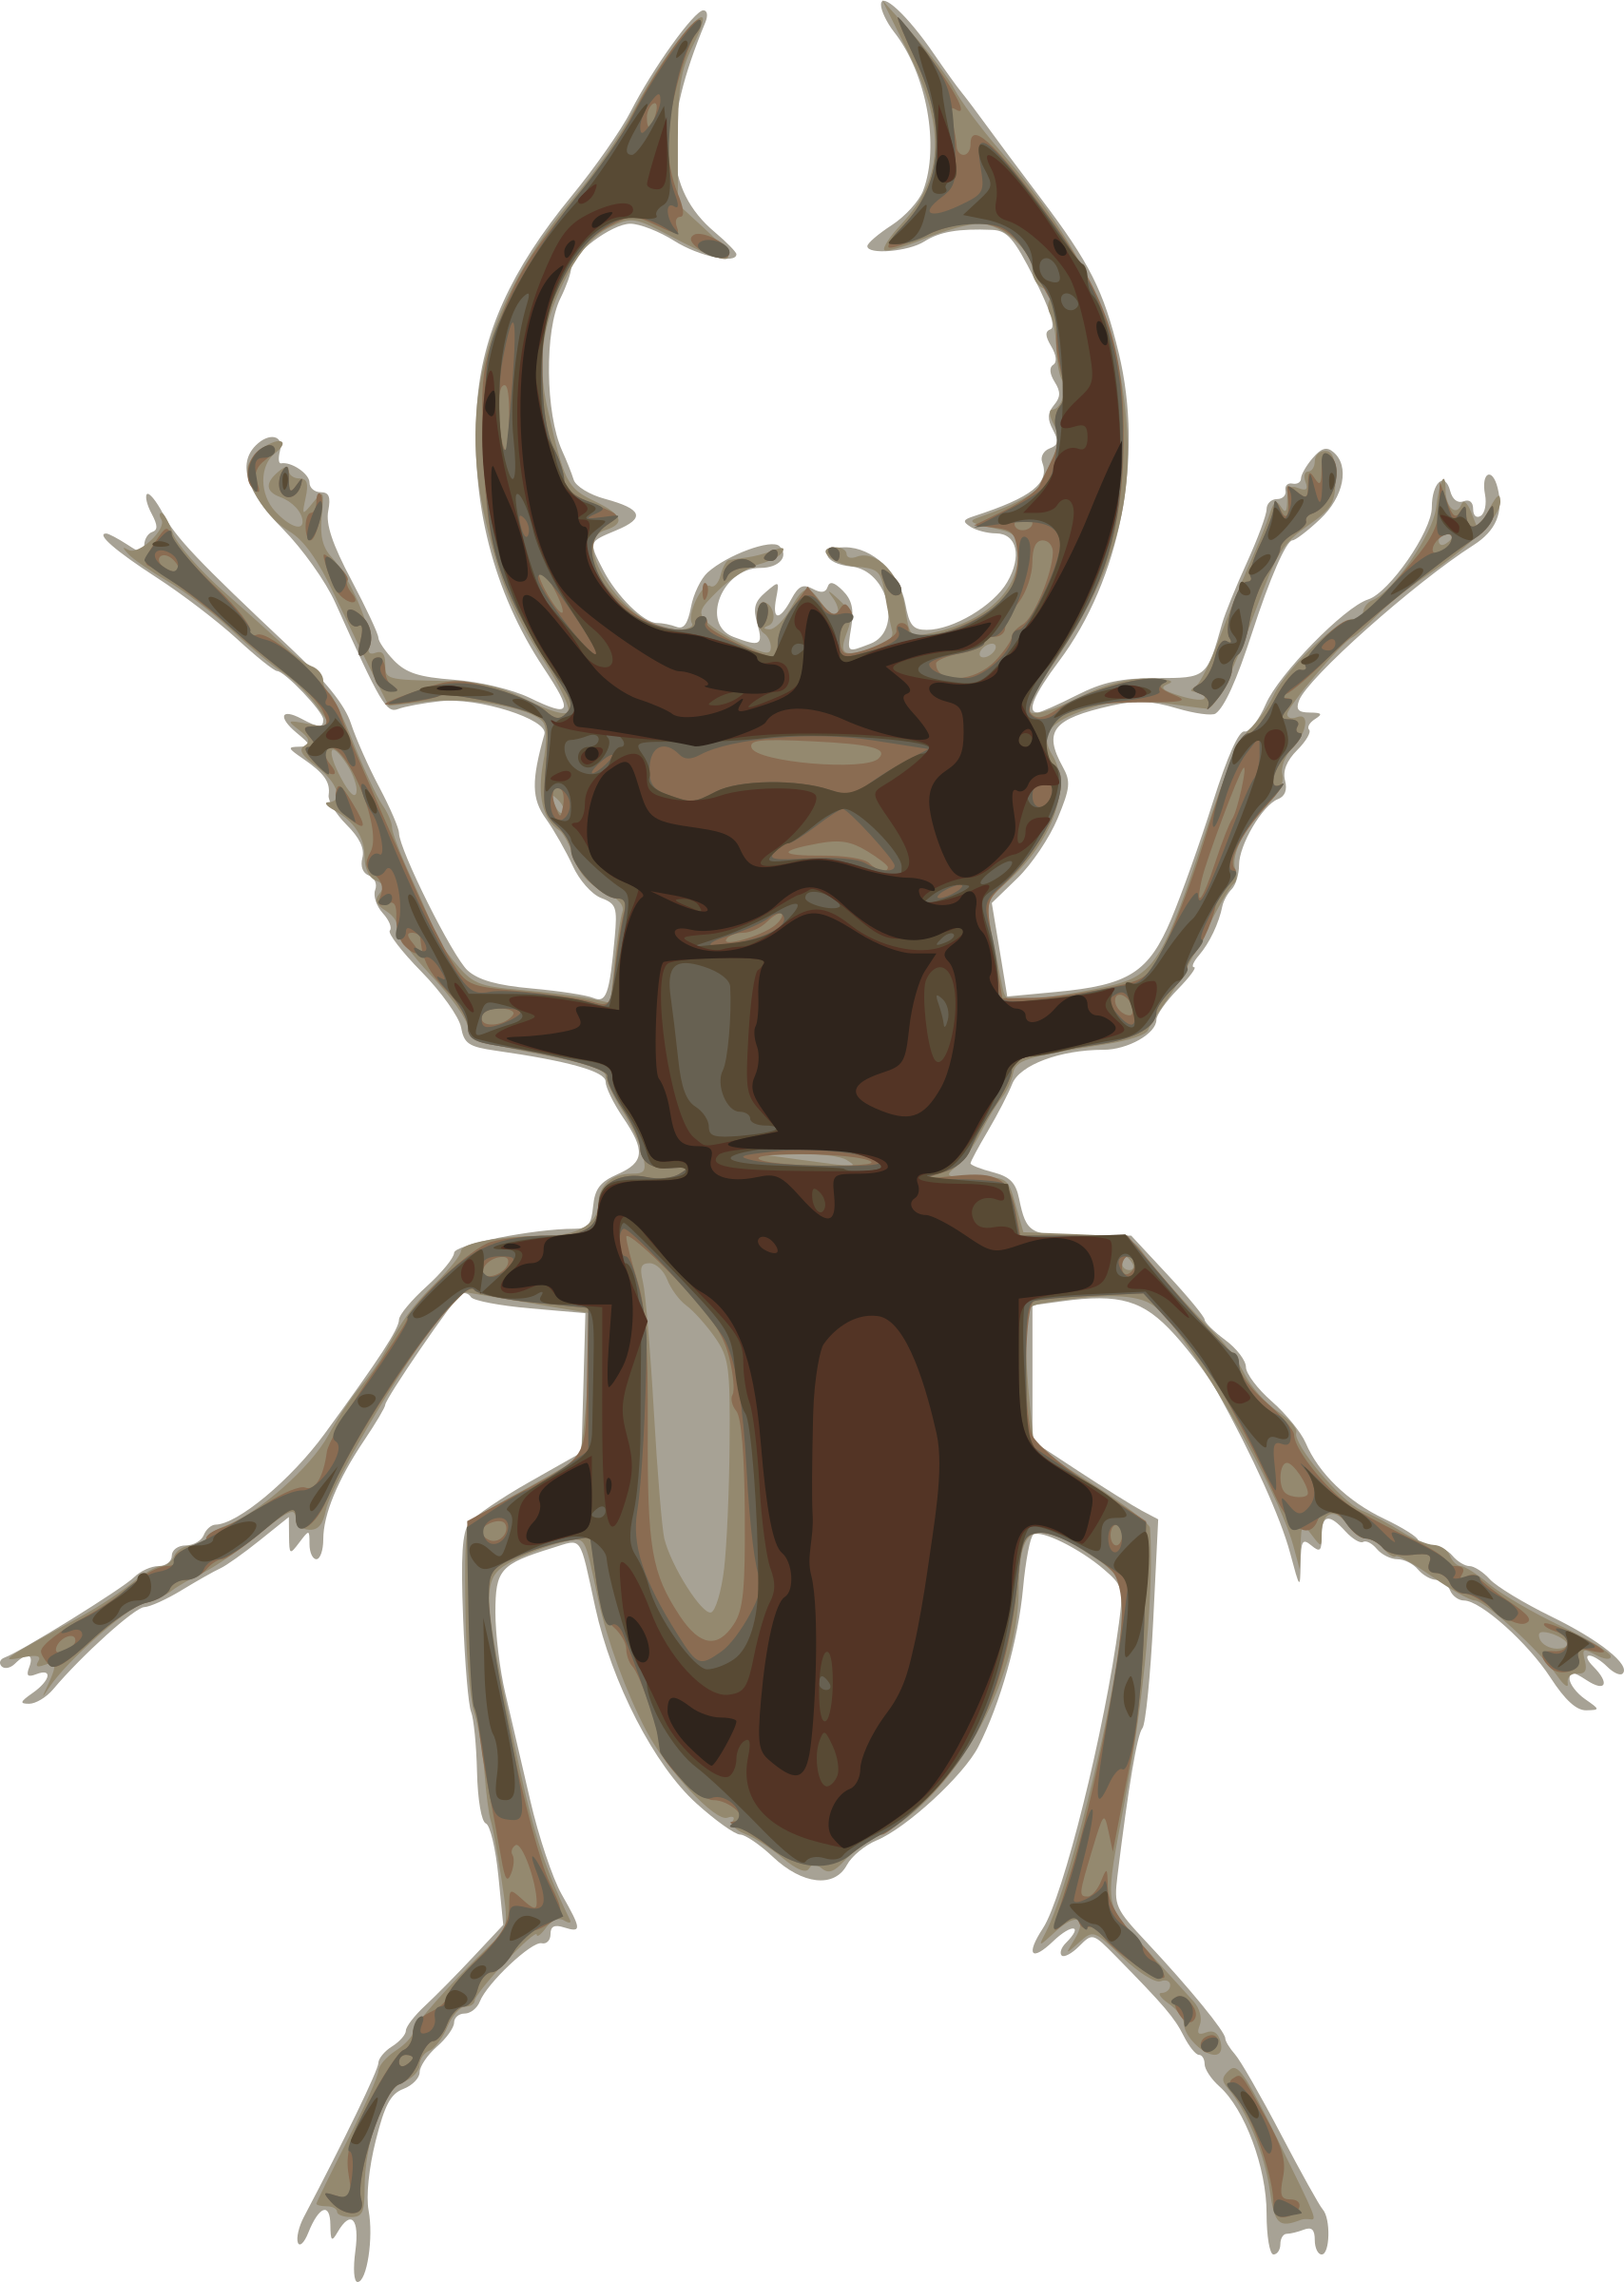 Stag Beetle clipart #6, Download drawings